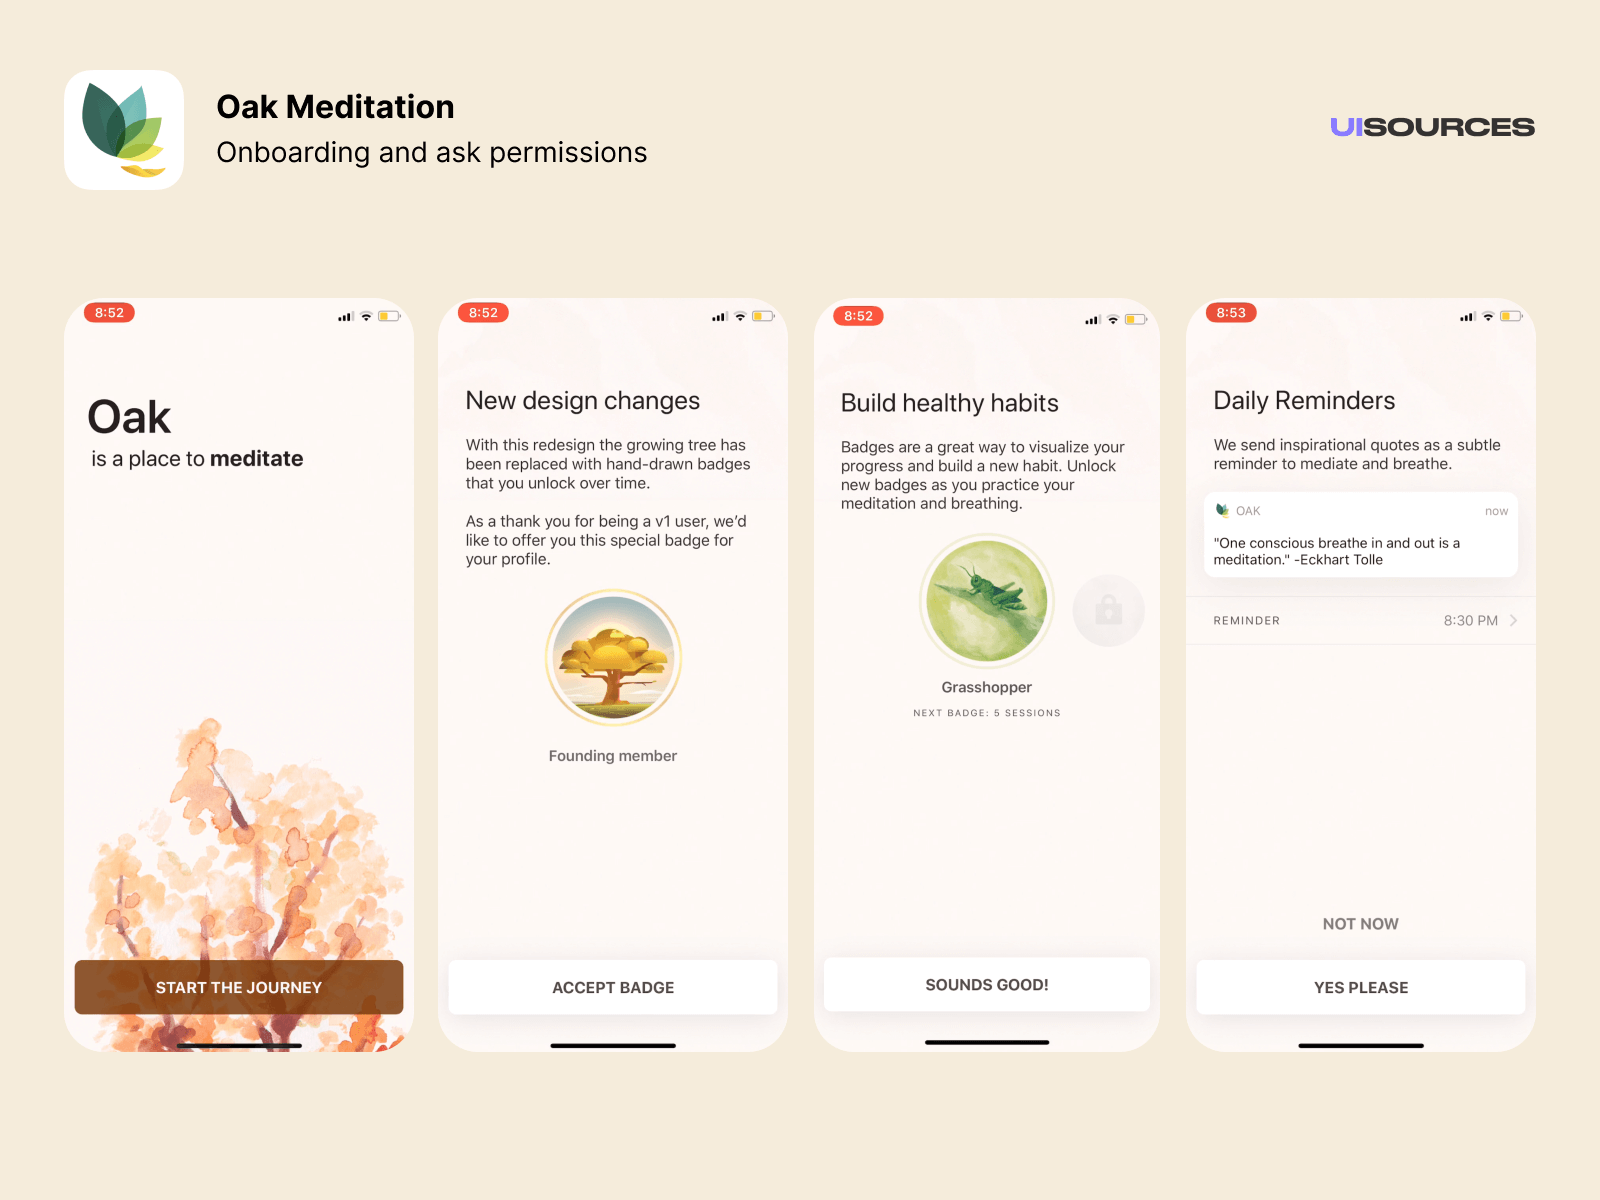 Onboarding and asking for notification permissions